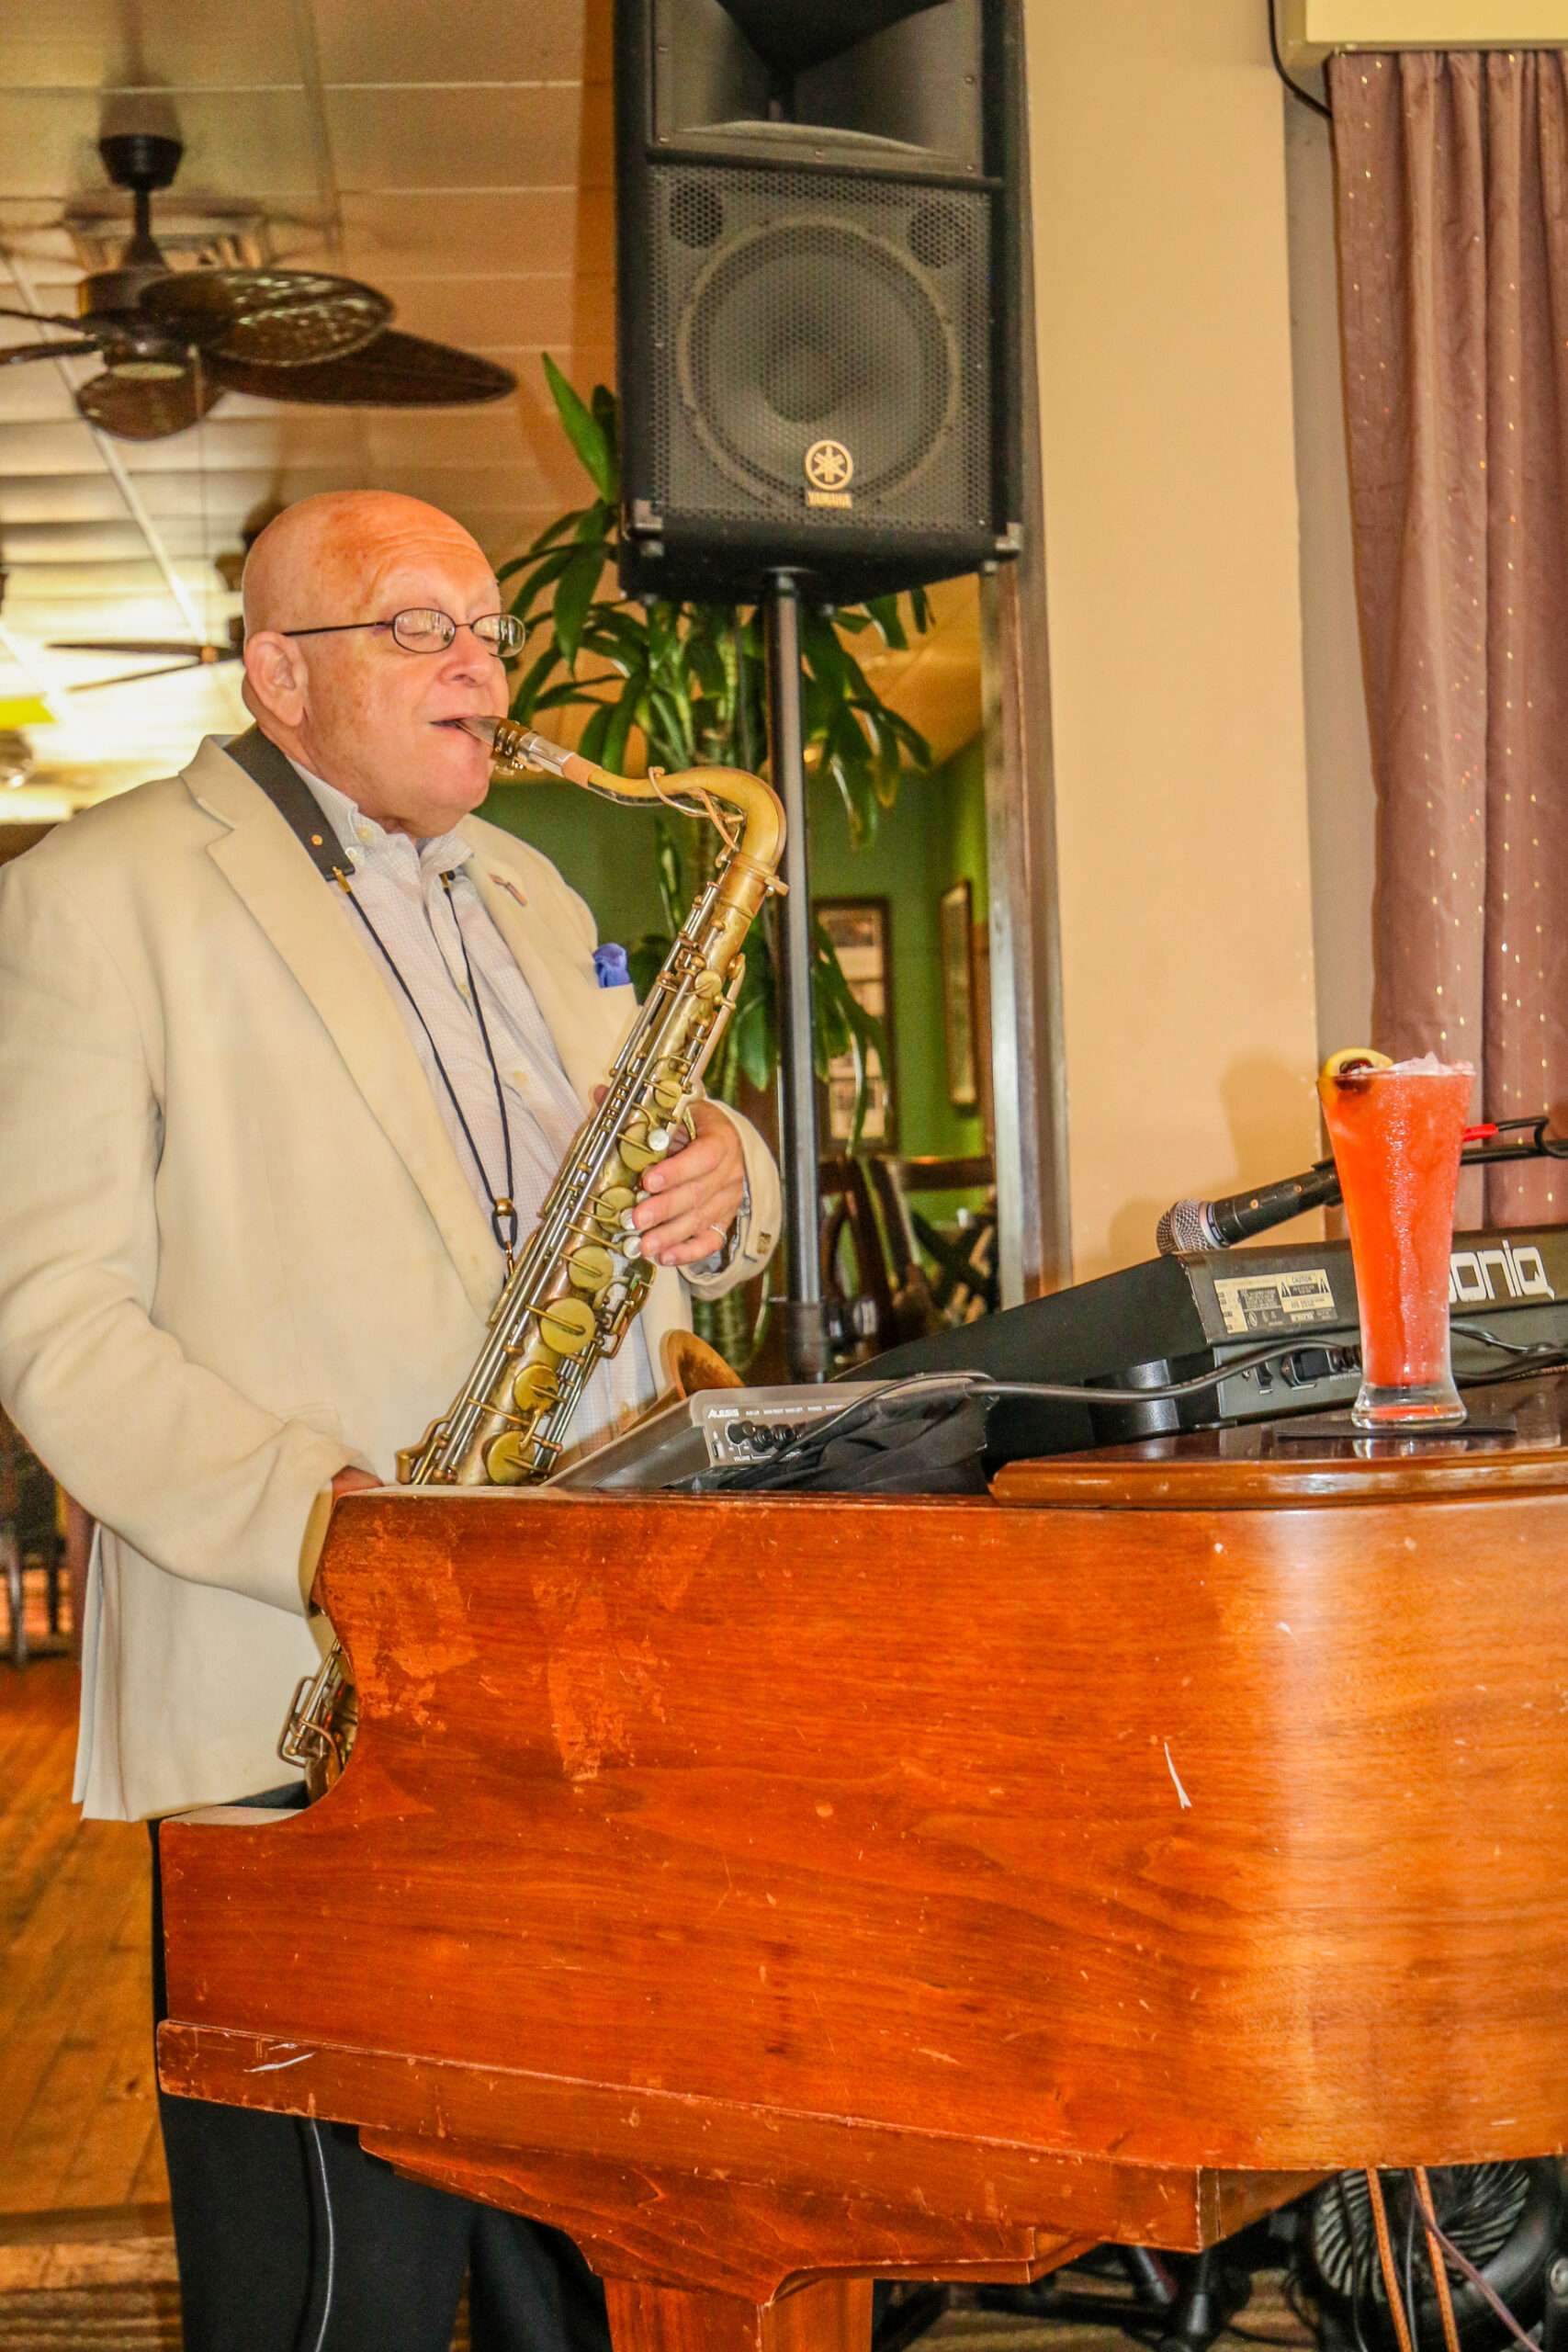 MAN PLAYING SAXAPHONE IN FRONT OF A PIANO